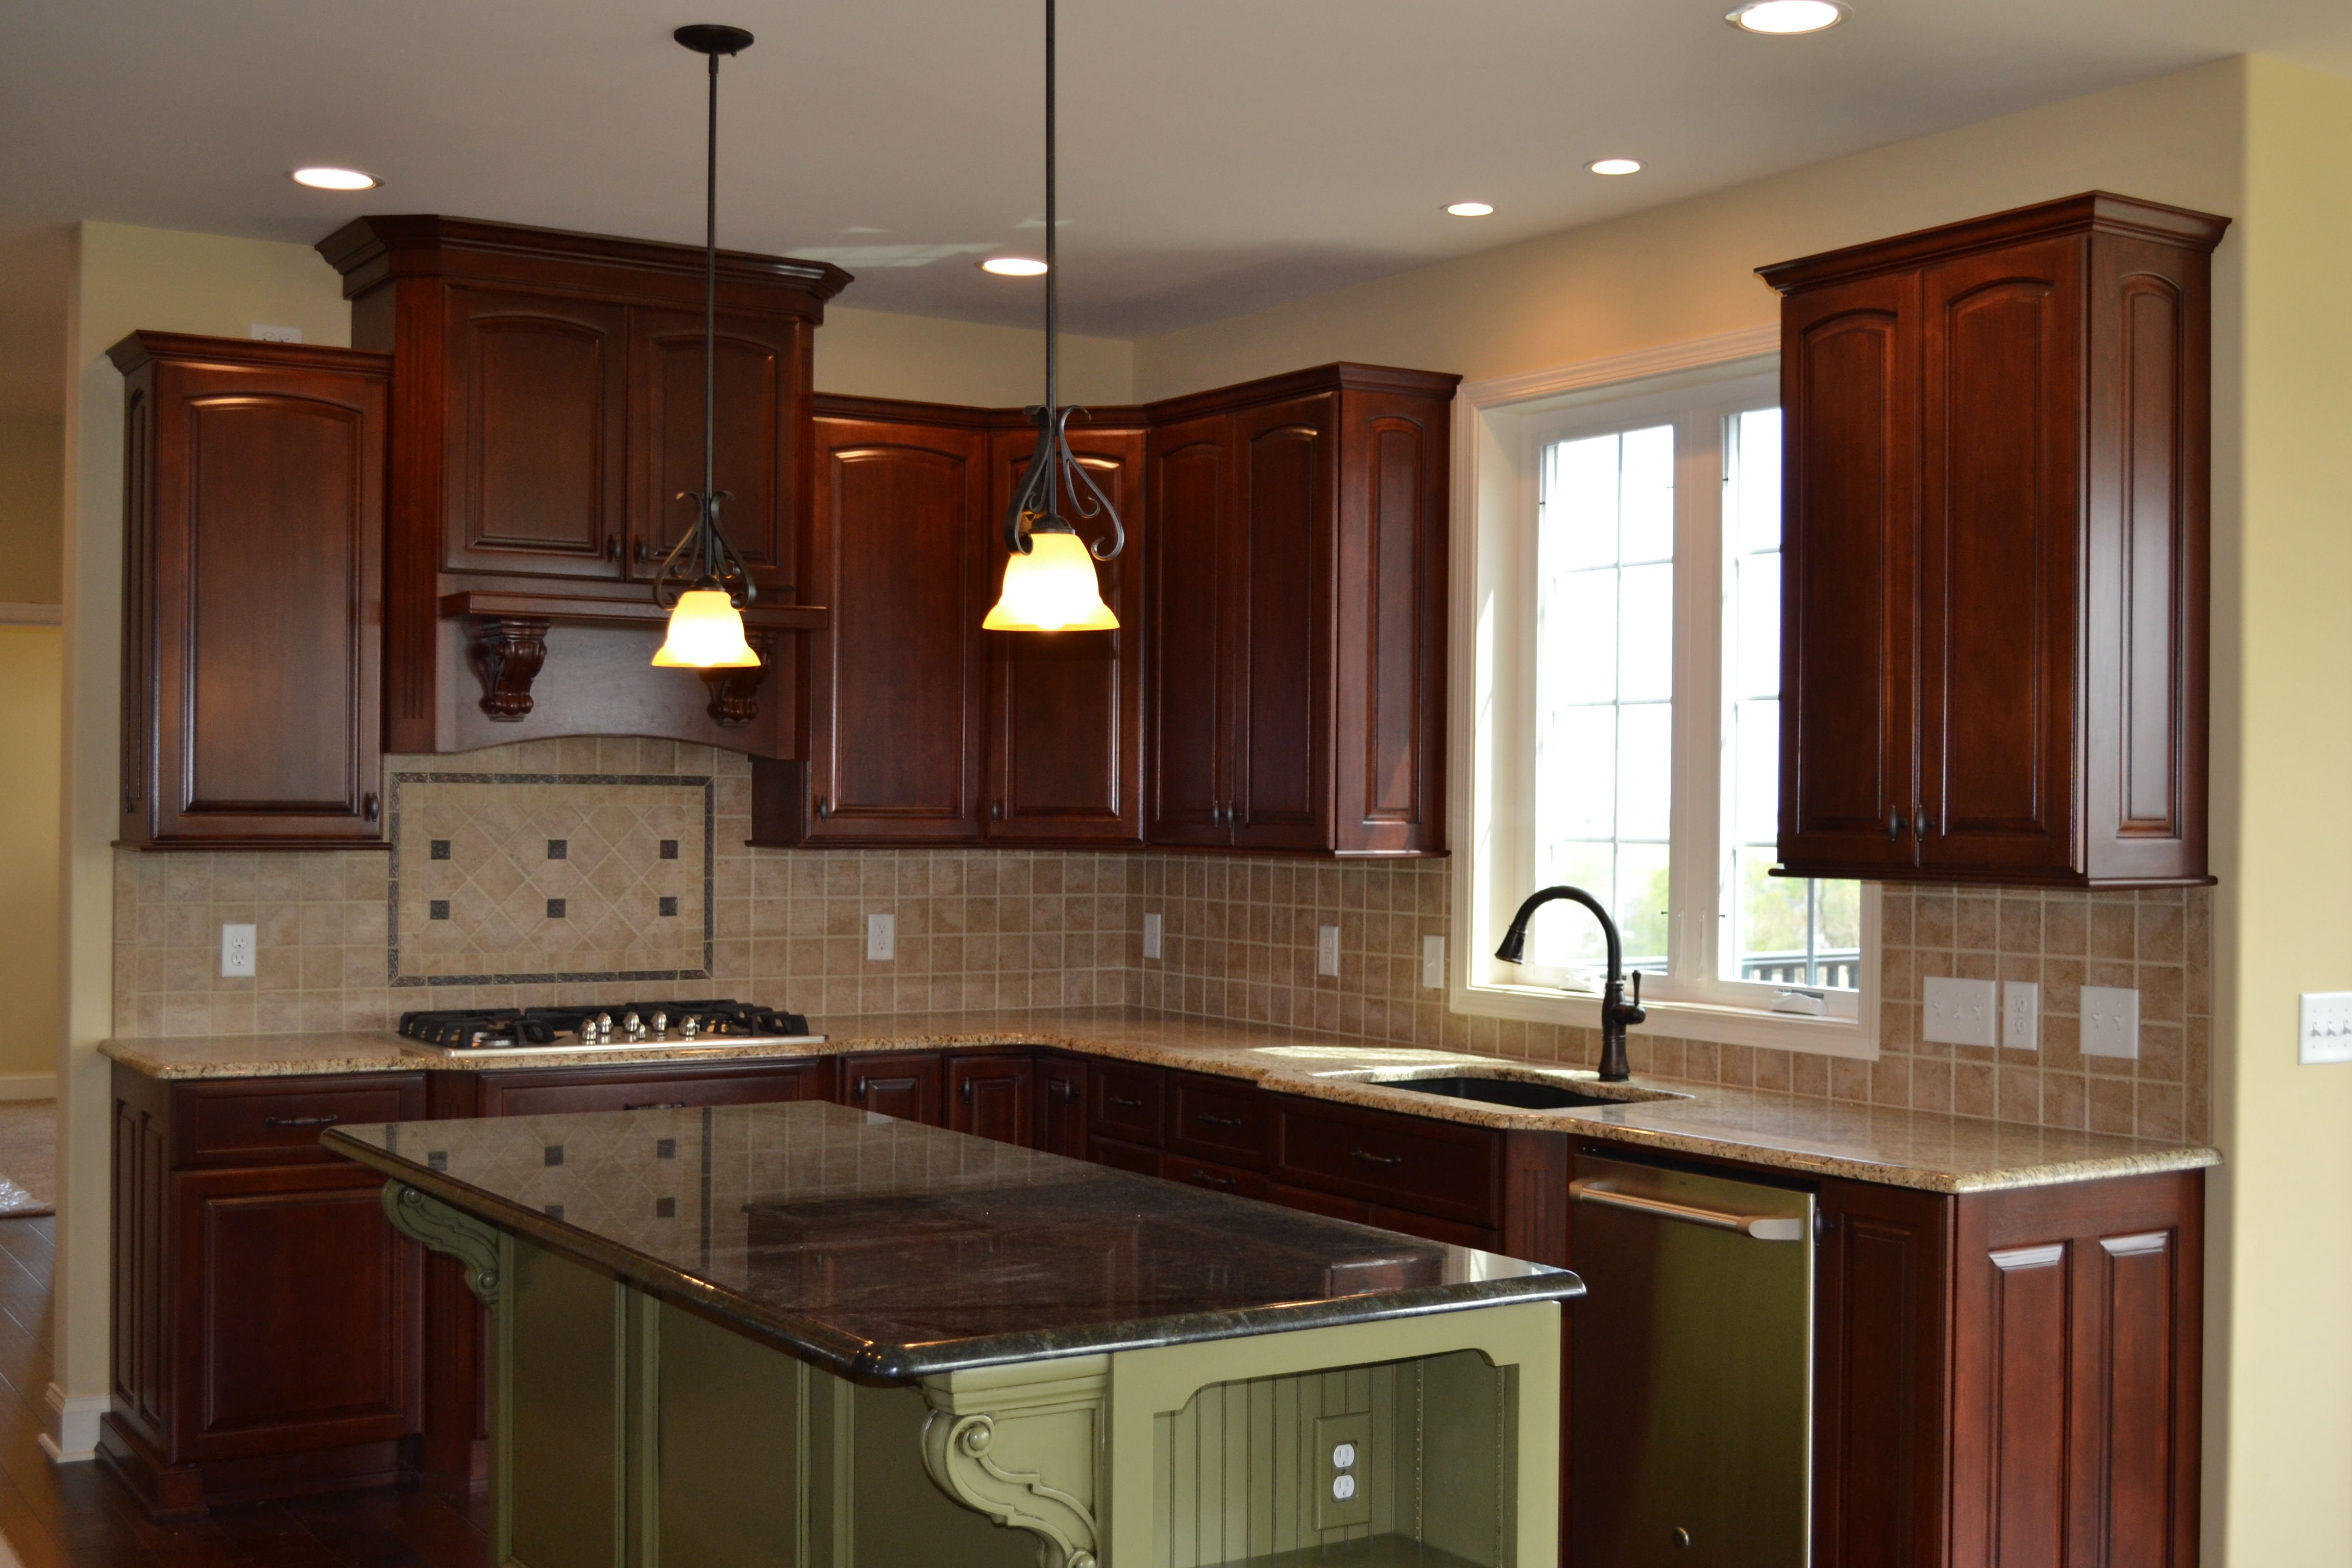 Kitchen Cabinets Dallastown Pa - Custom kitchen in home built by jeffrey l henry inc of york